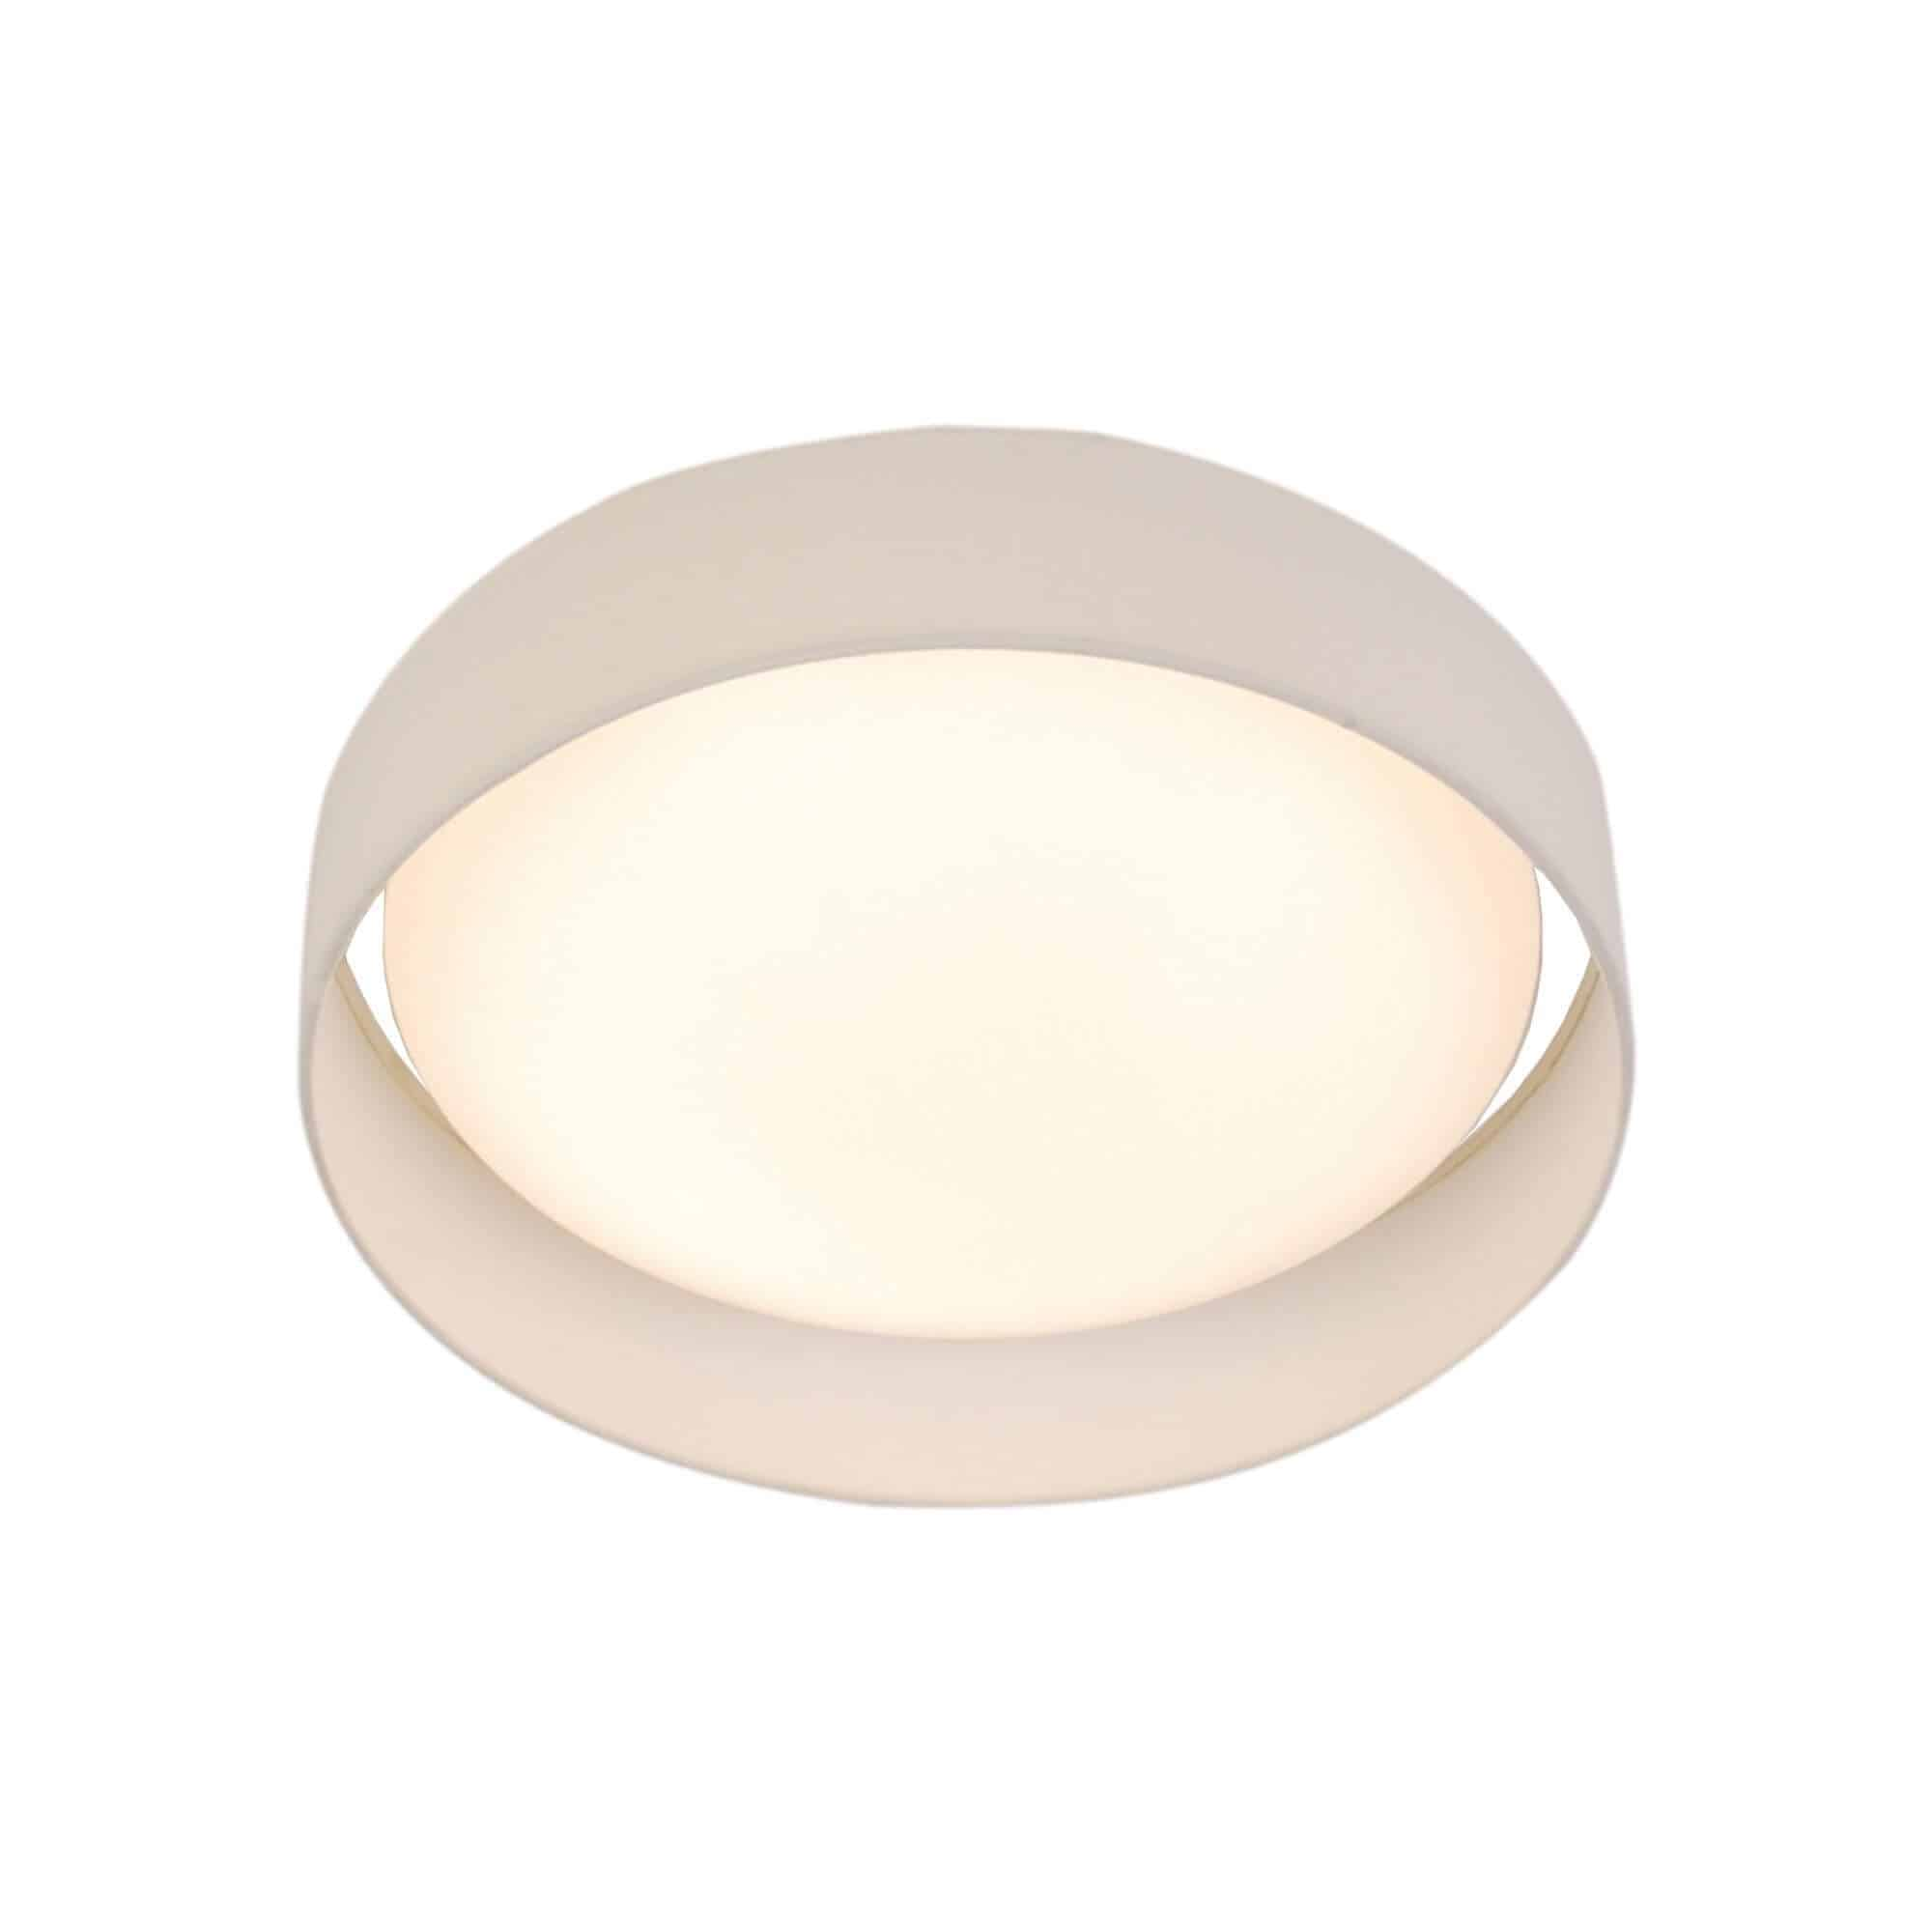 9371-50WH – Searchlight Gianna White 1 Light LED Flush Ceiling Light